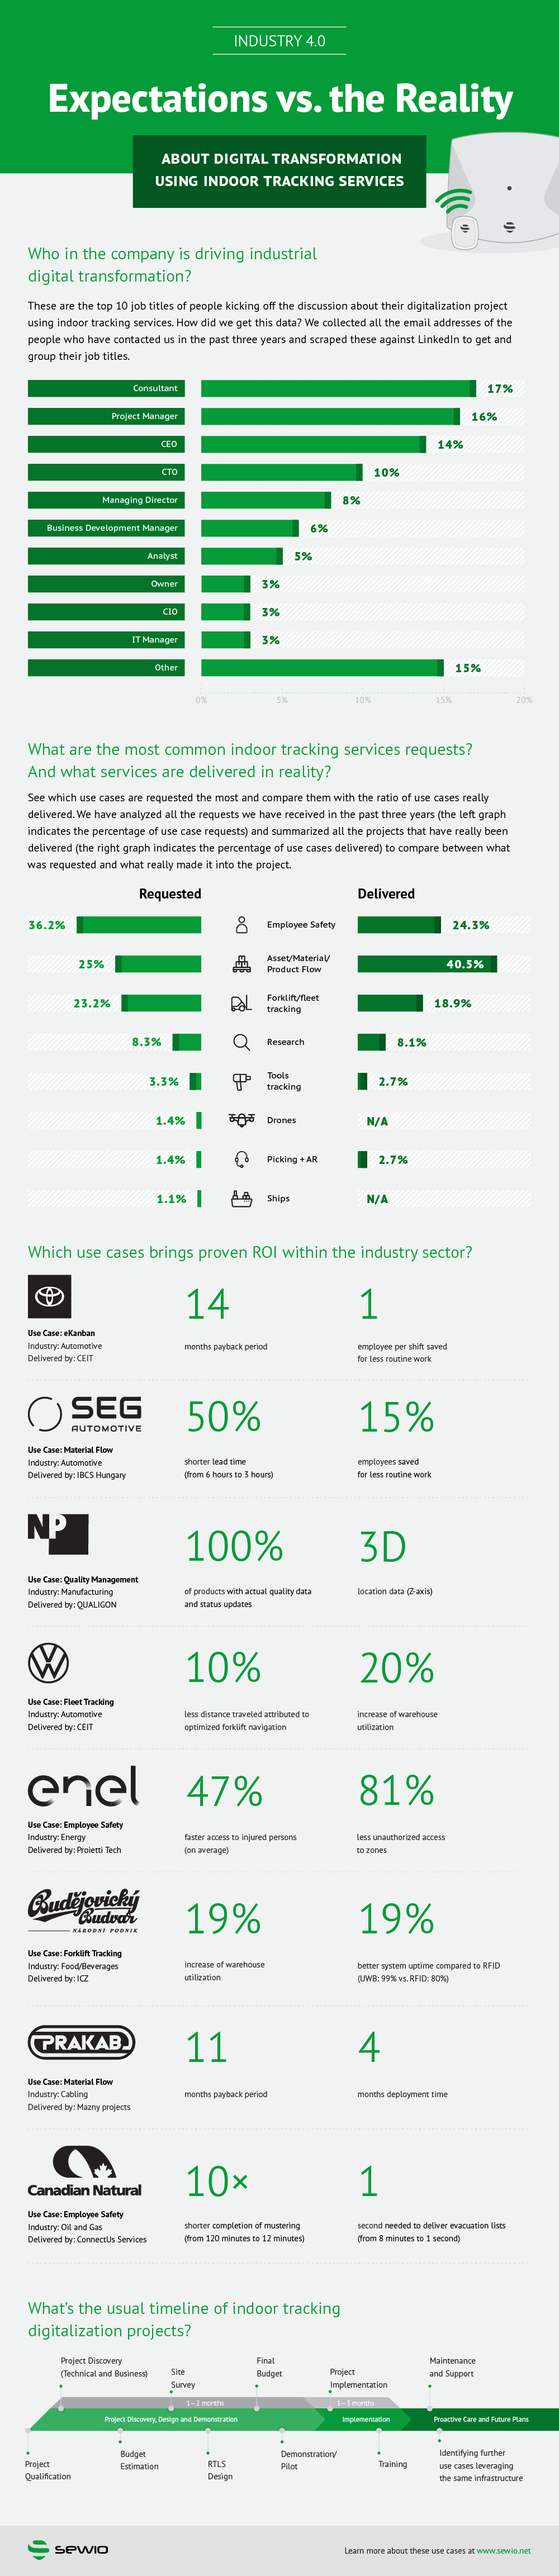 [Infographic] Industry 4.0: Expectations vs. Reality About Digital Transformation in Industry